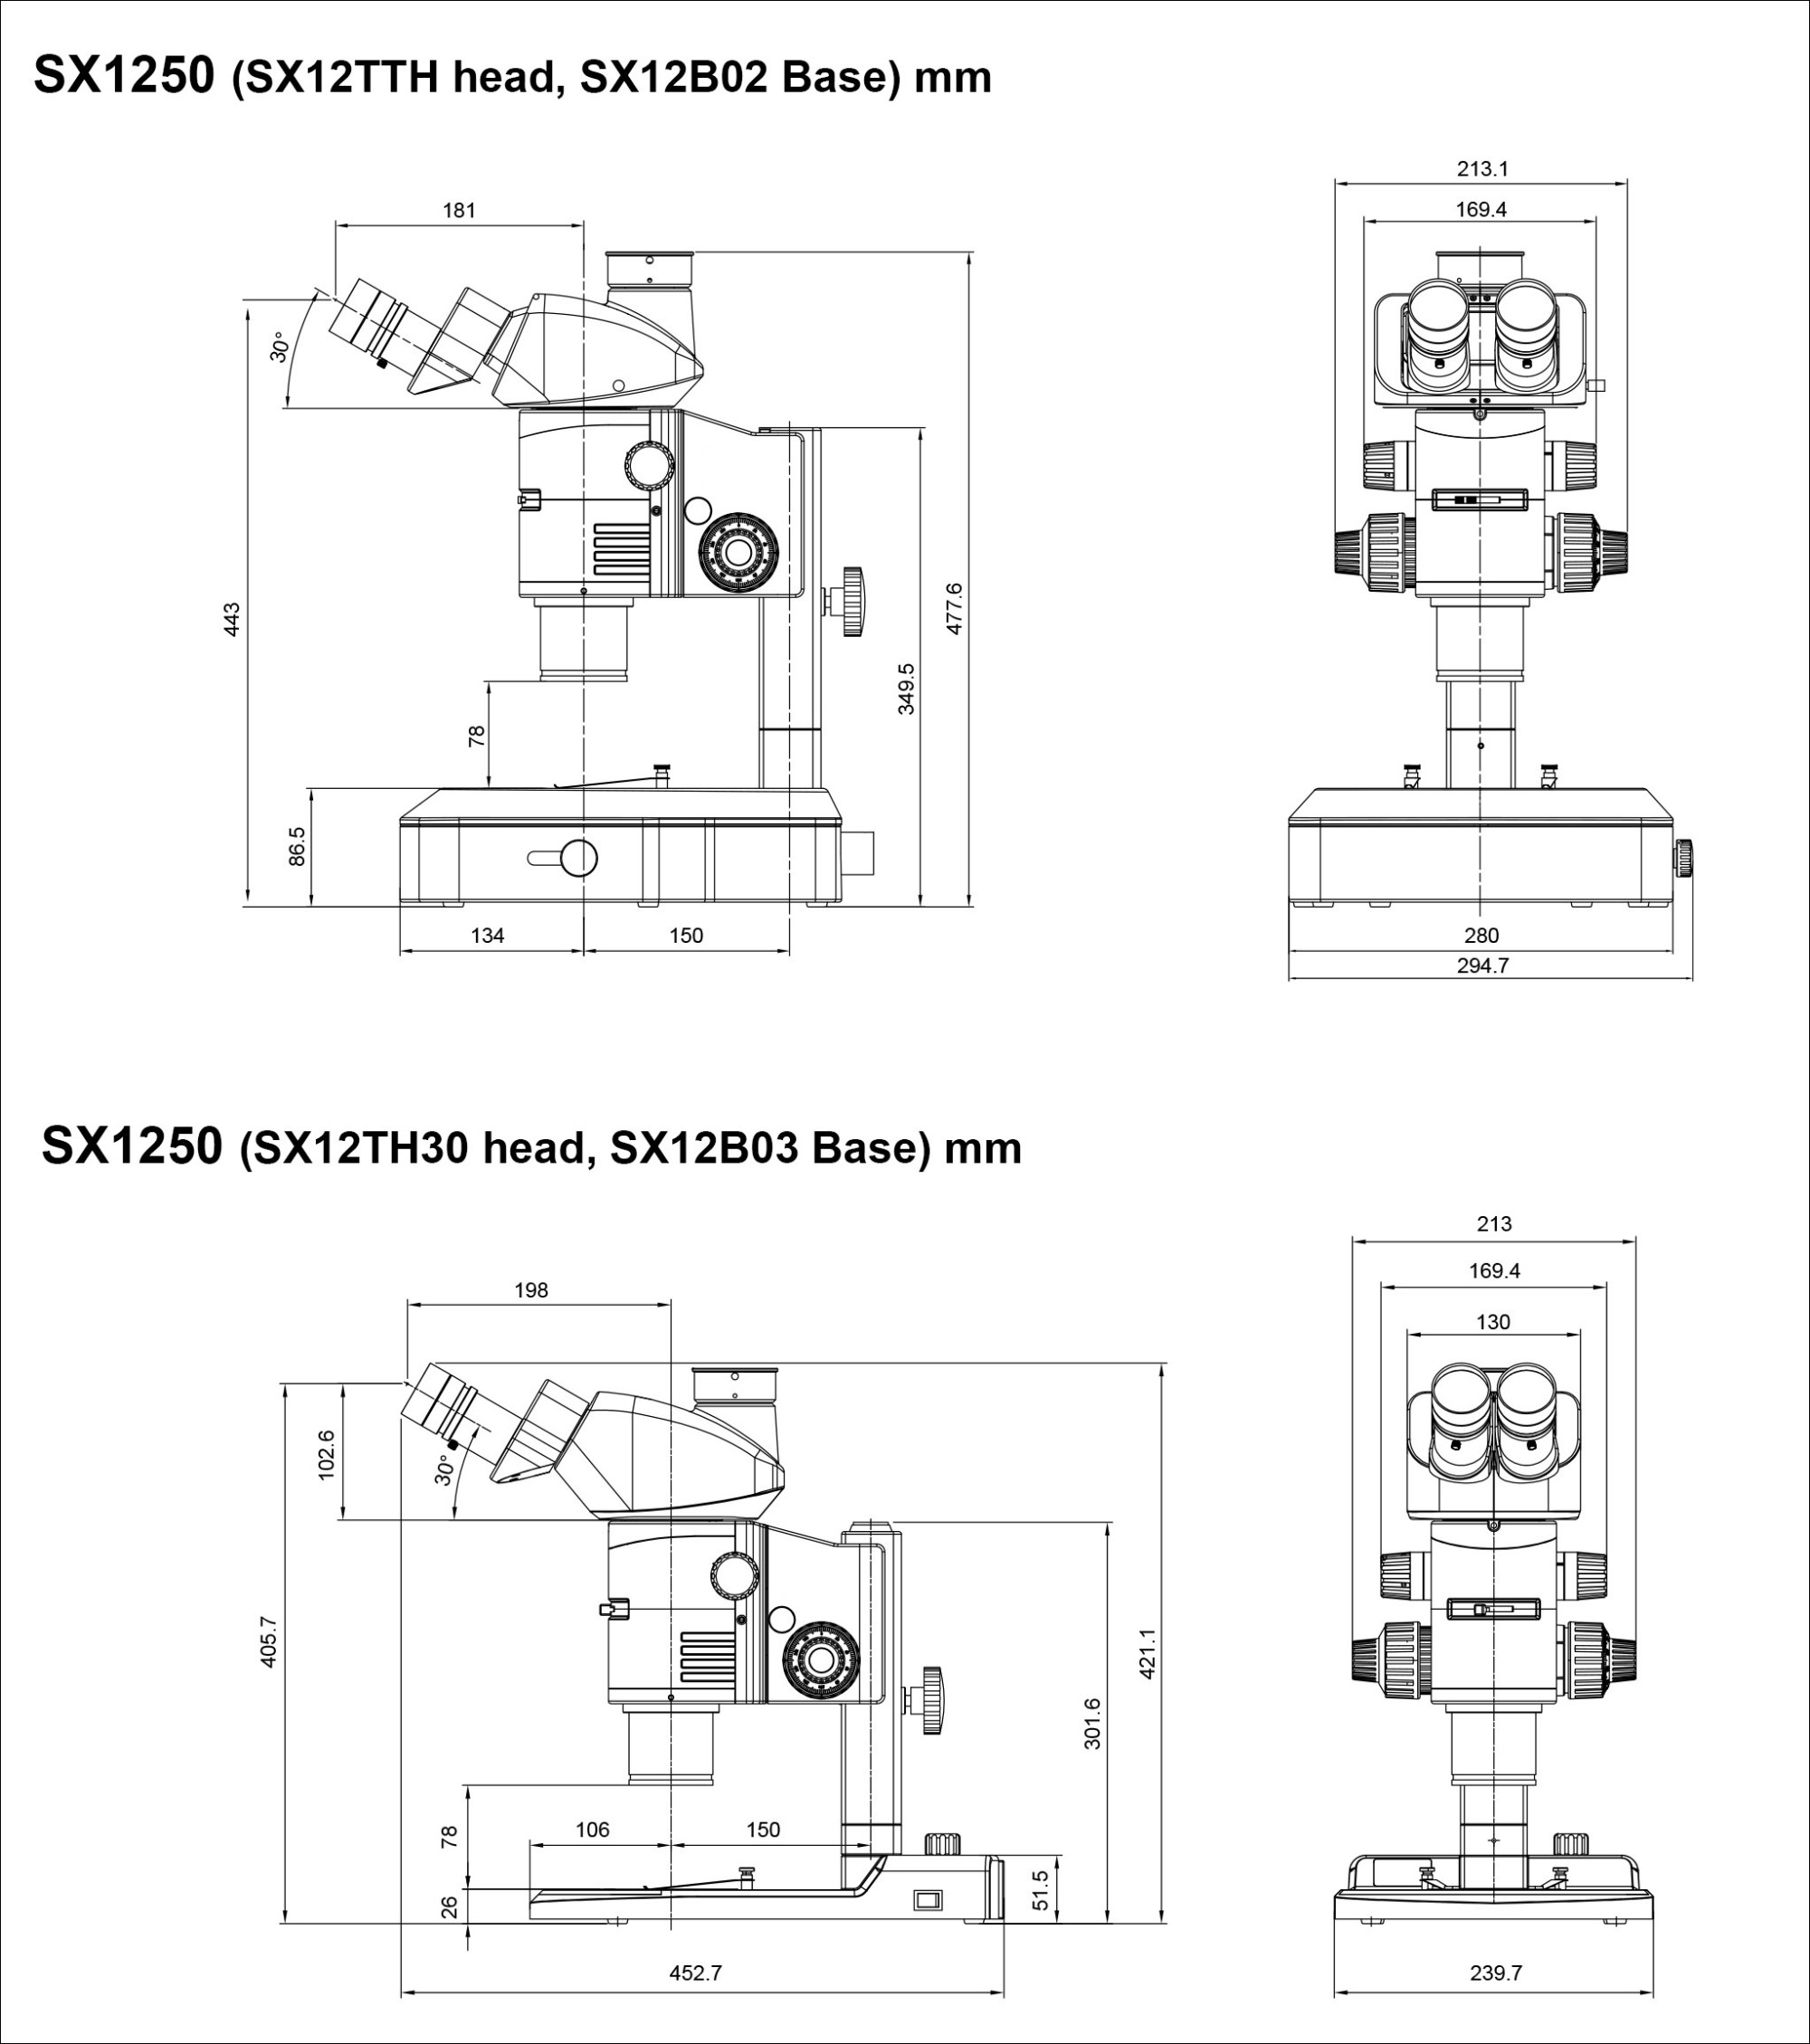 hight resolution of sx1250 product dimensions